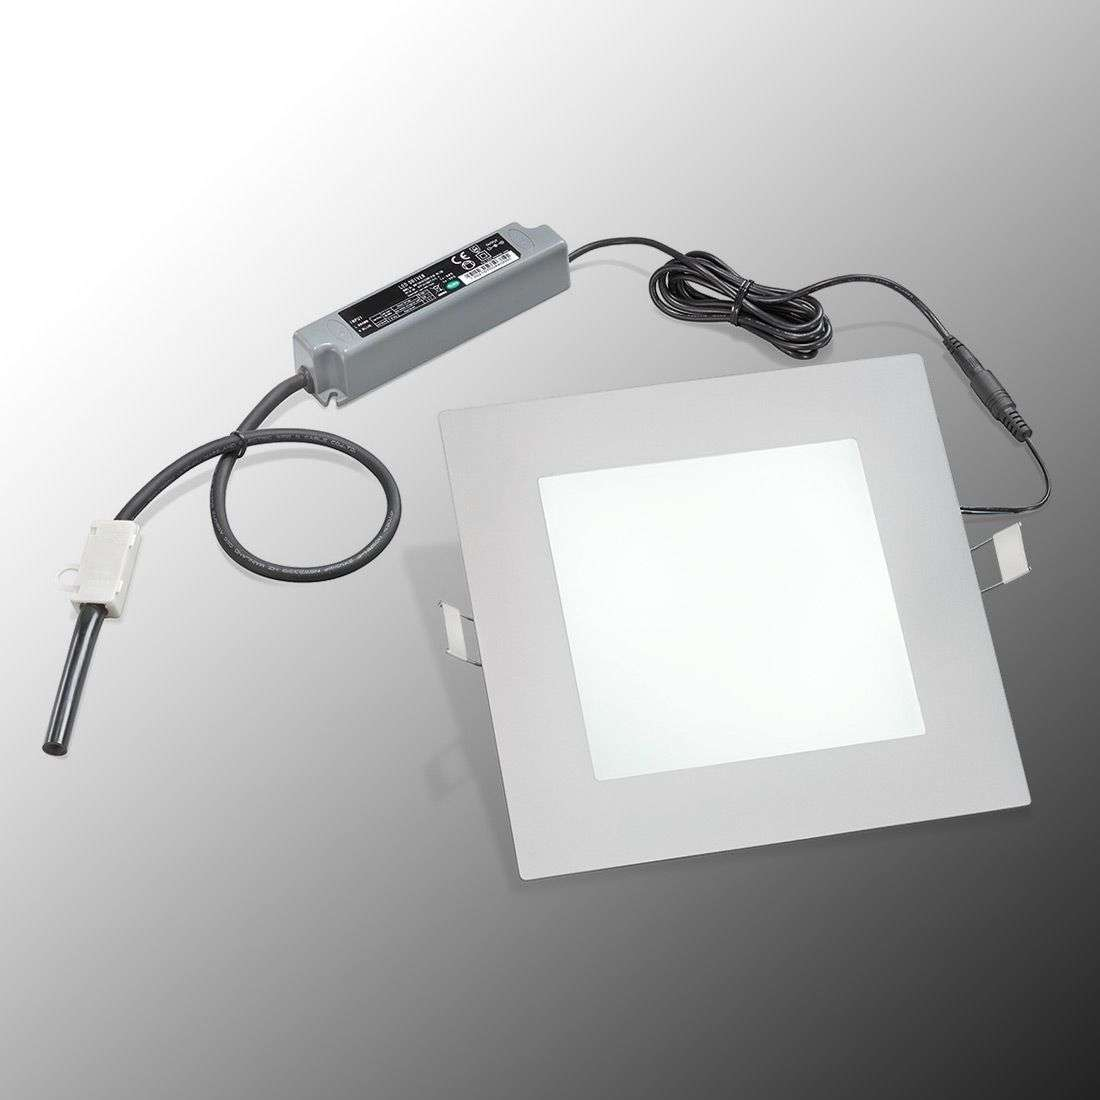 York Inbouwlamp met LED, daglicht-3012509-31